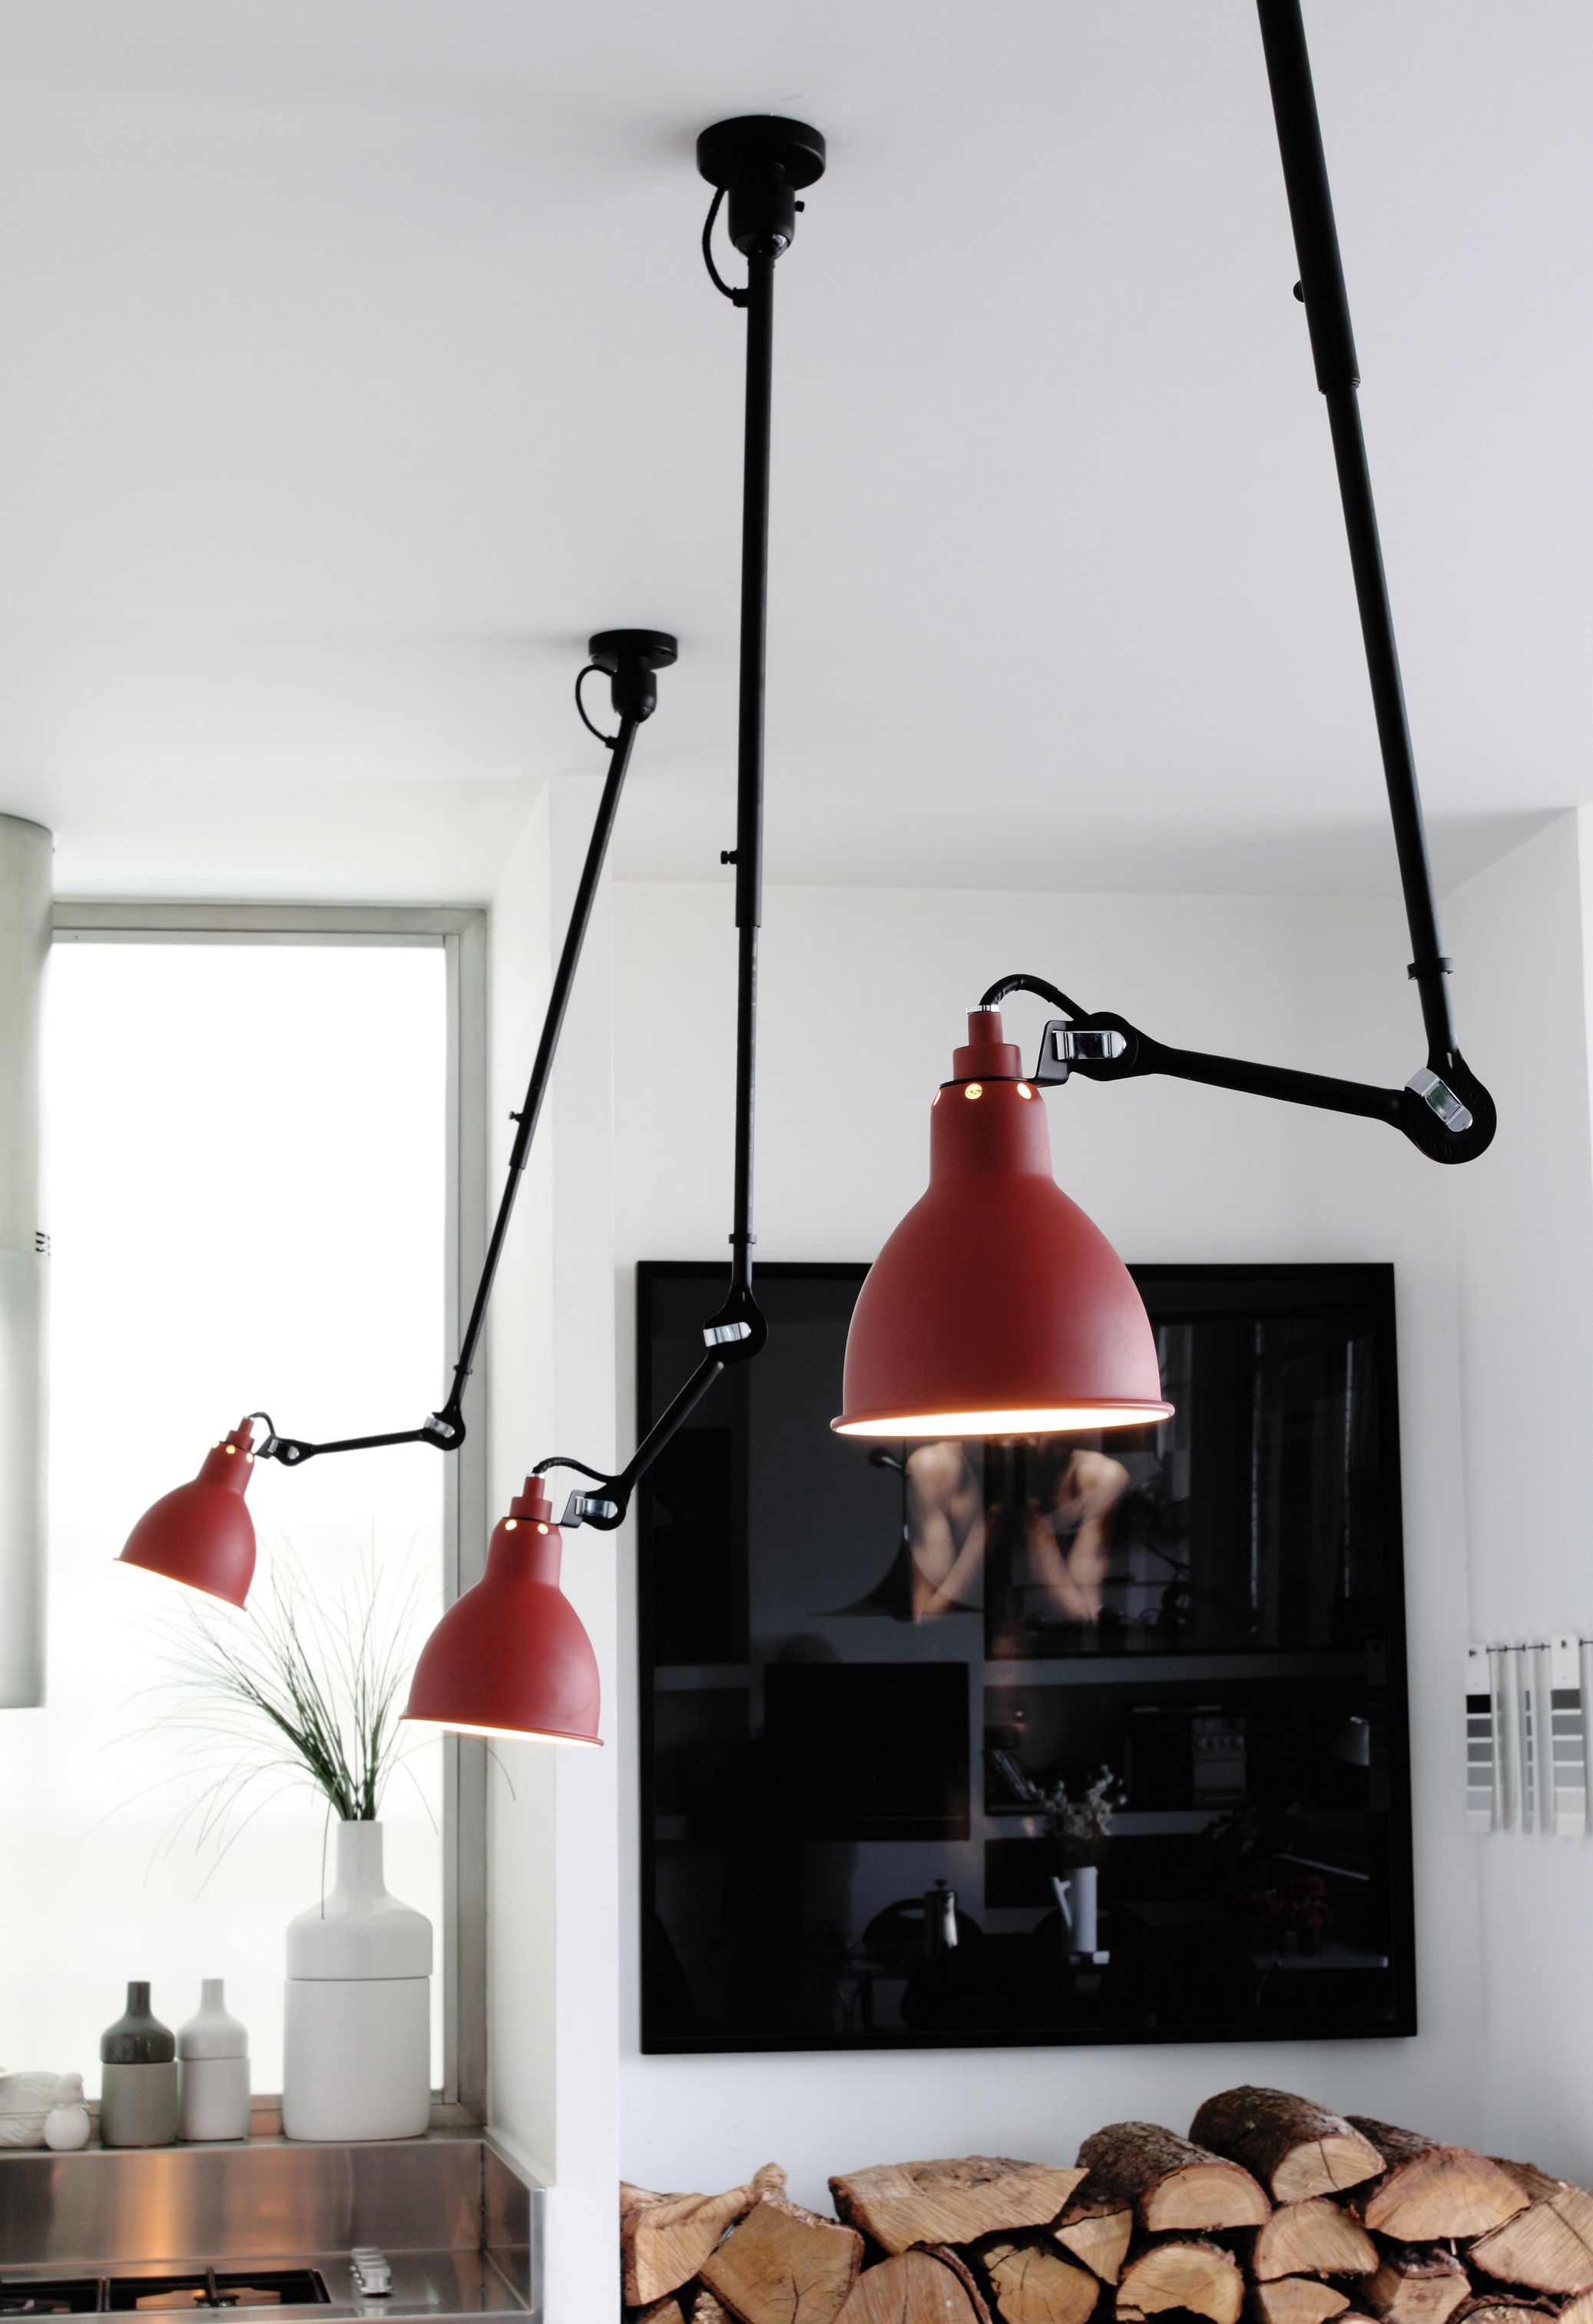 Éditions In Dcw RougeMade Design N°302 Suspension hdstrCoBQx